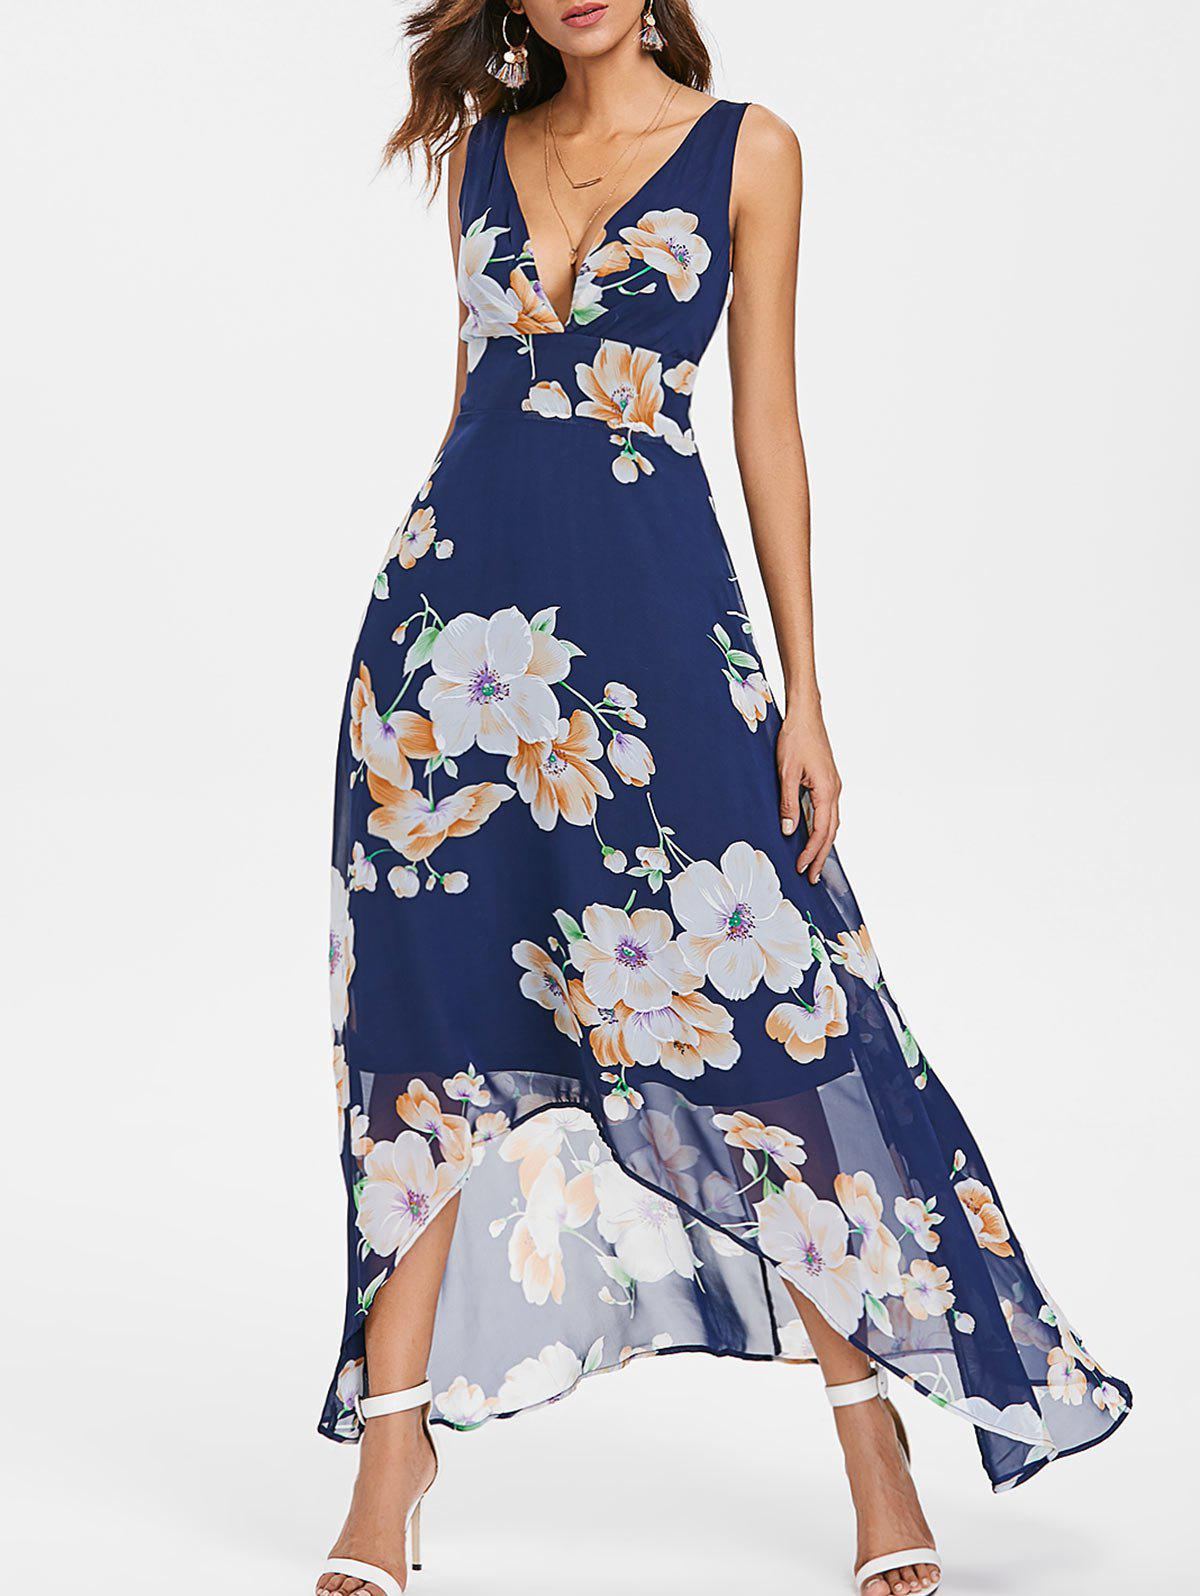 Shop Floral Print Plunging Neckline Maxi Chiffon Dress